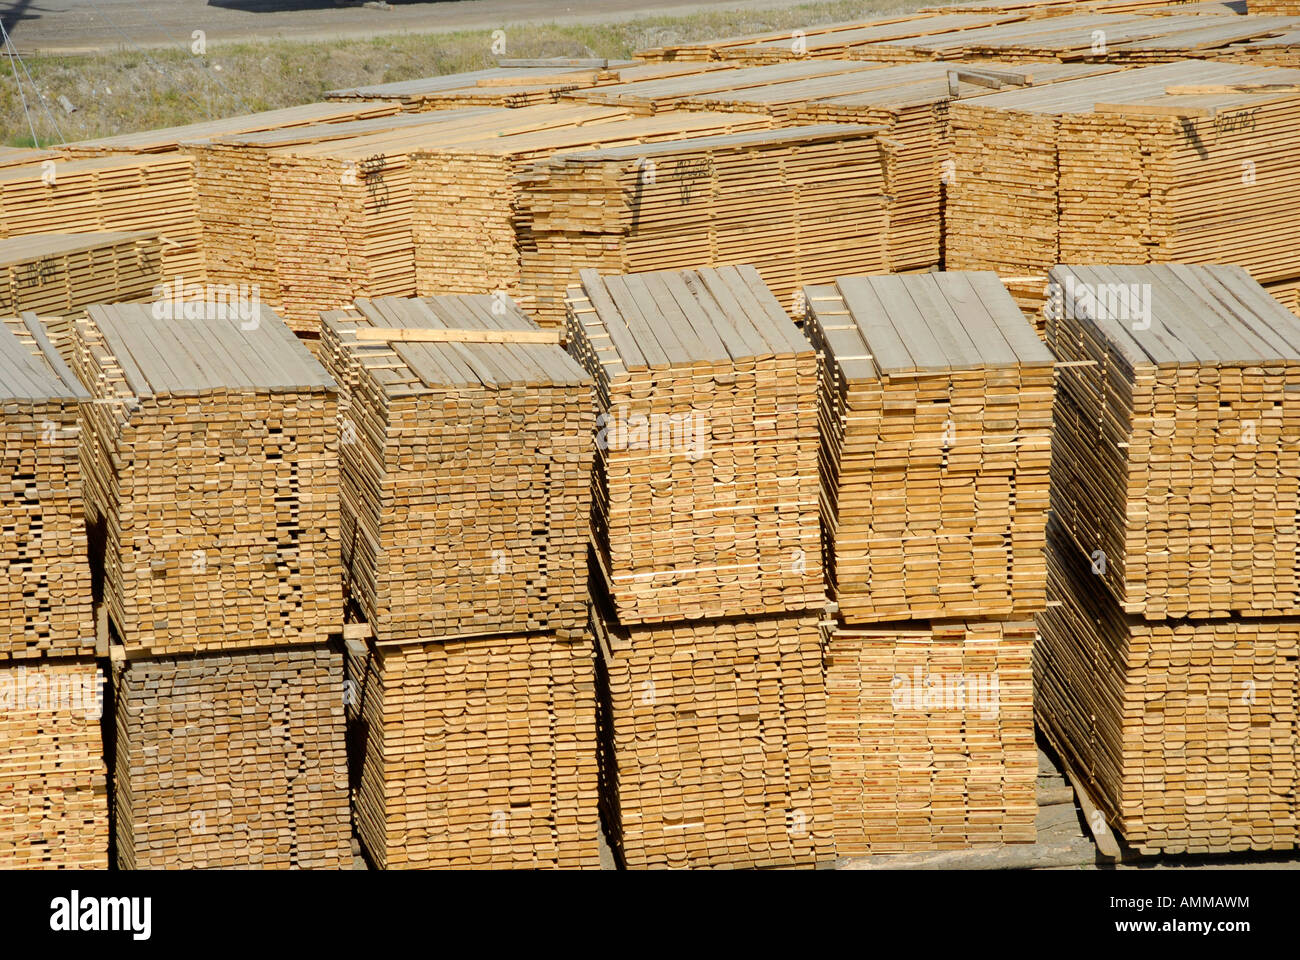 Stacked Lumber Forestry Logging Wood Industry Quesnel British Columbia BC Canada - Stock Image